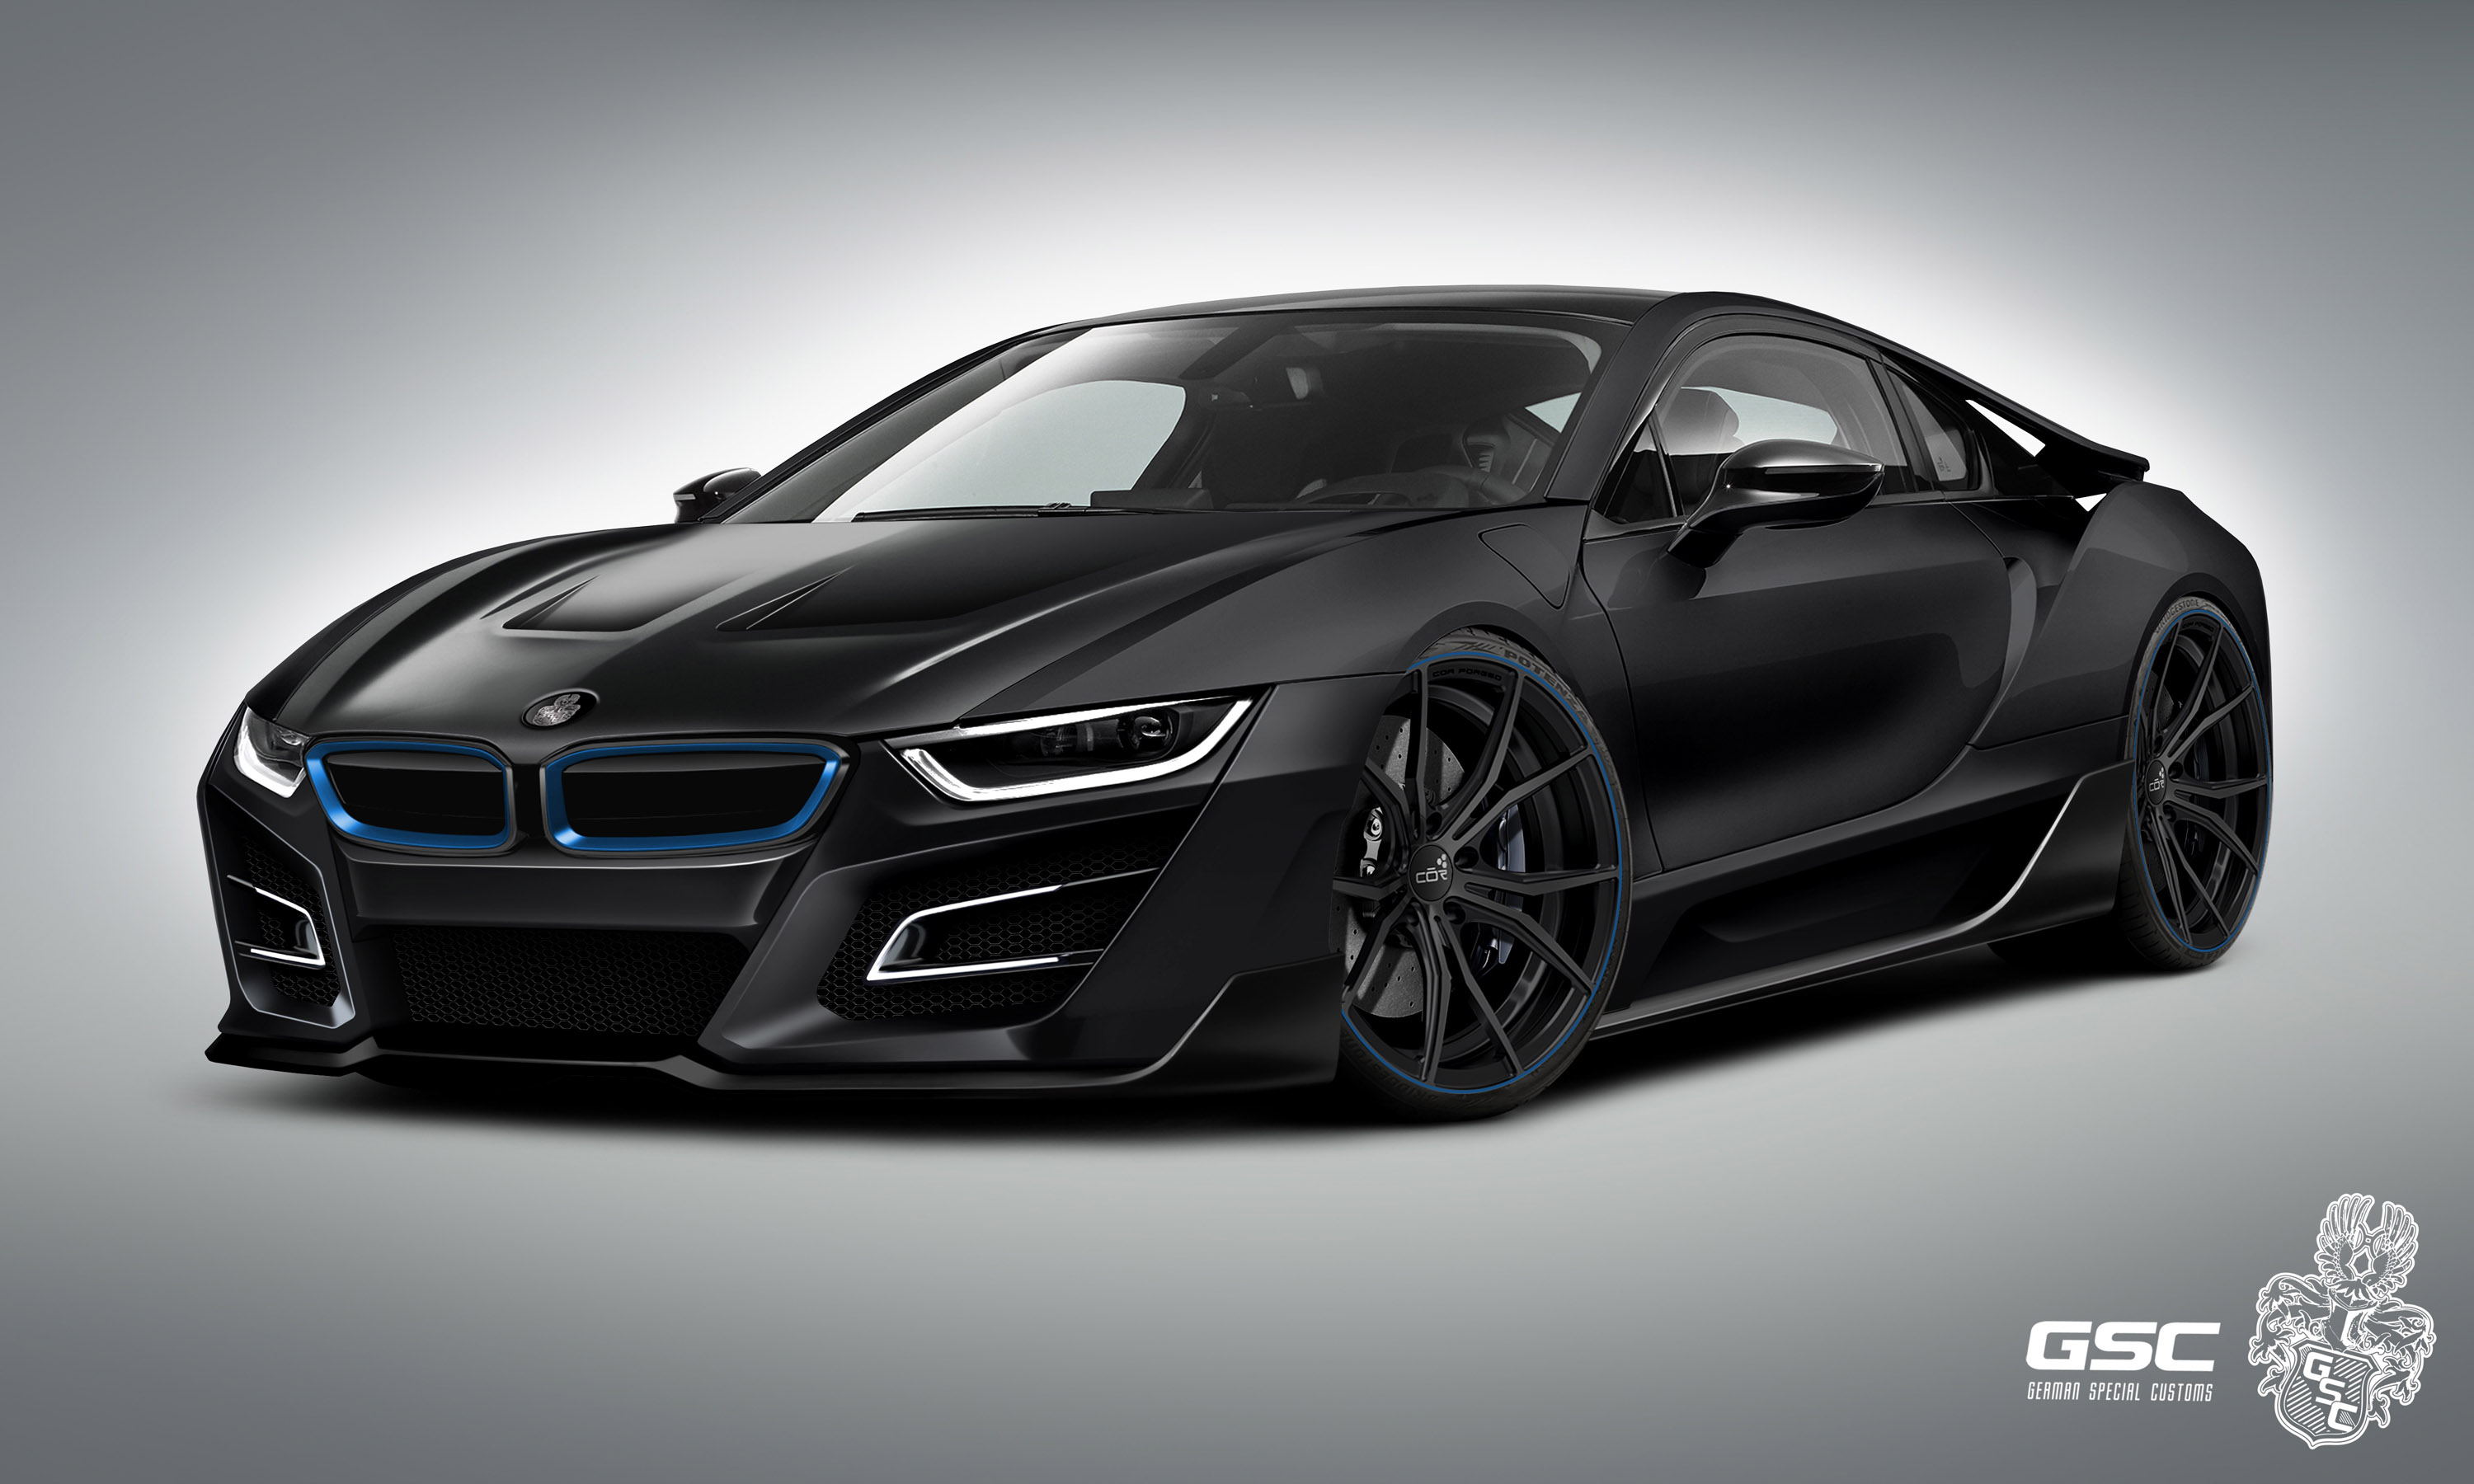 german special customs previews the bmw i8 itron. Black Bedroom Furniture Sets. Home Design Ideas